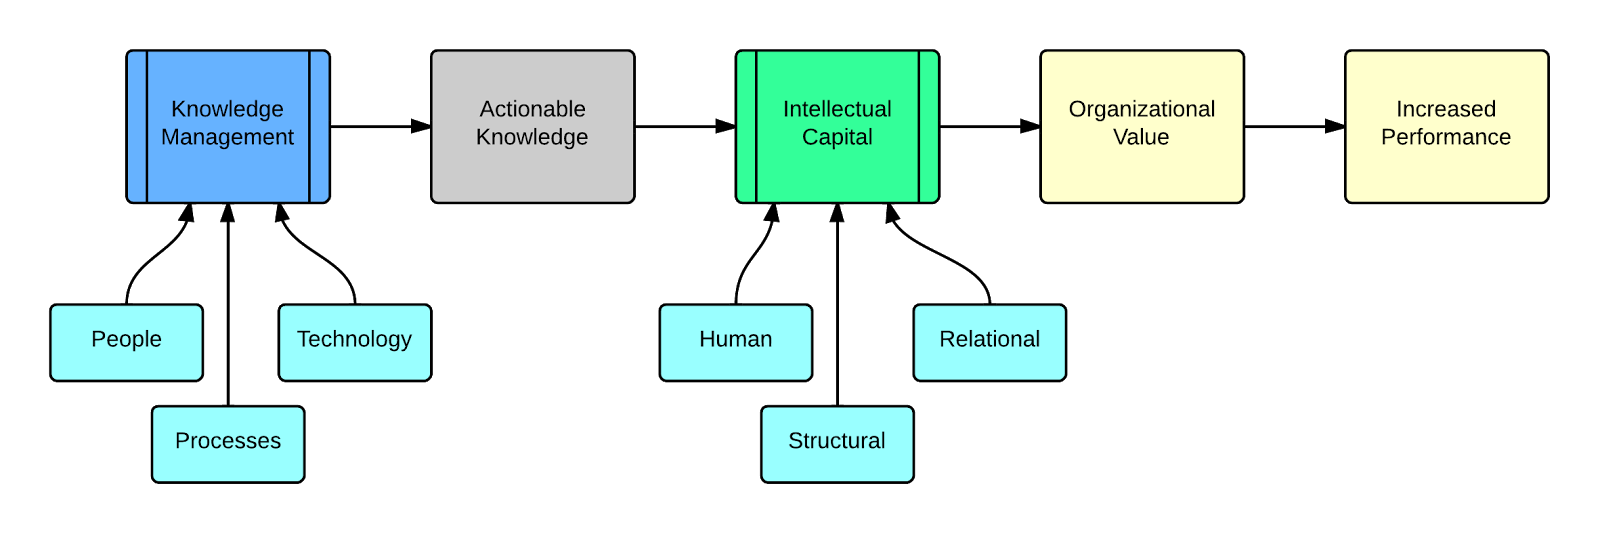 relationship between knowledge management and library